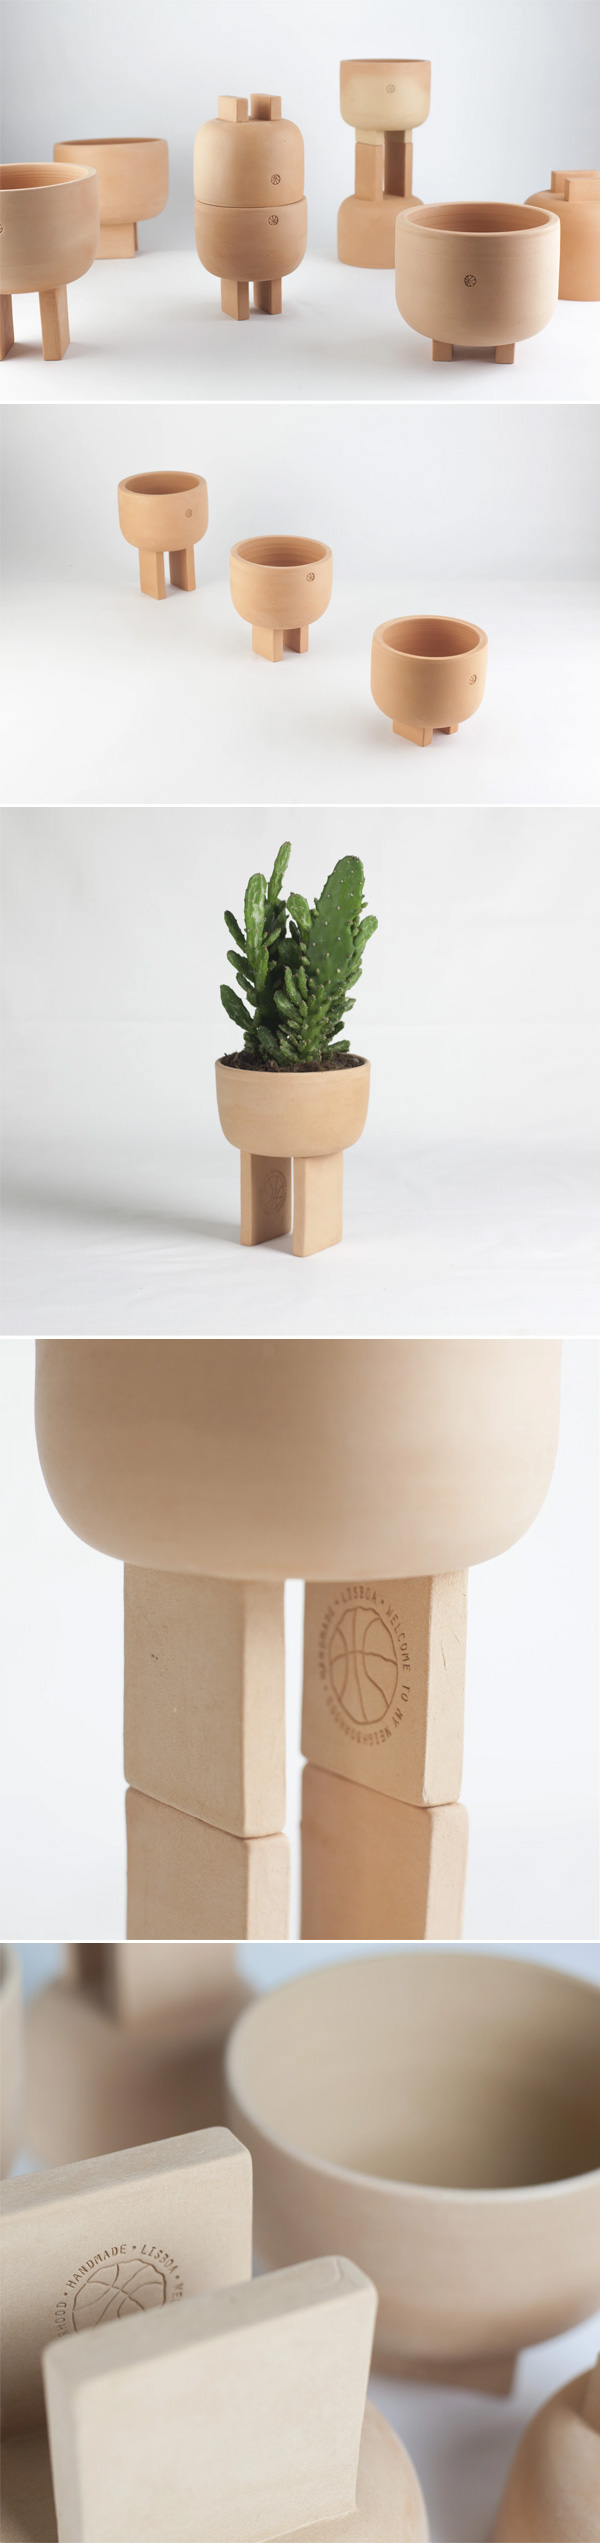 Geta Planters by Quartier Ceramics